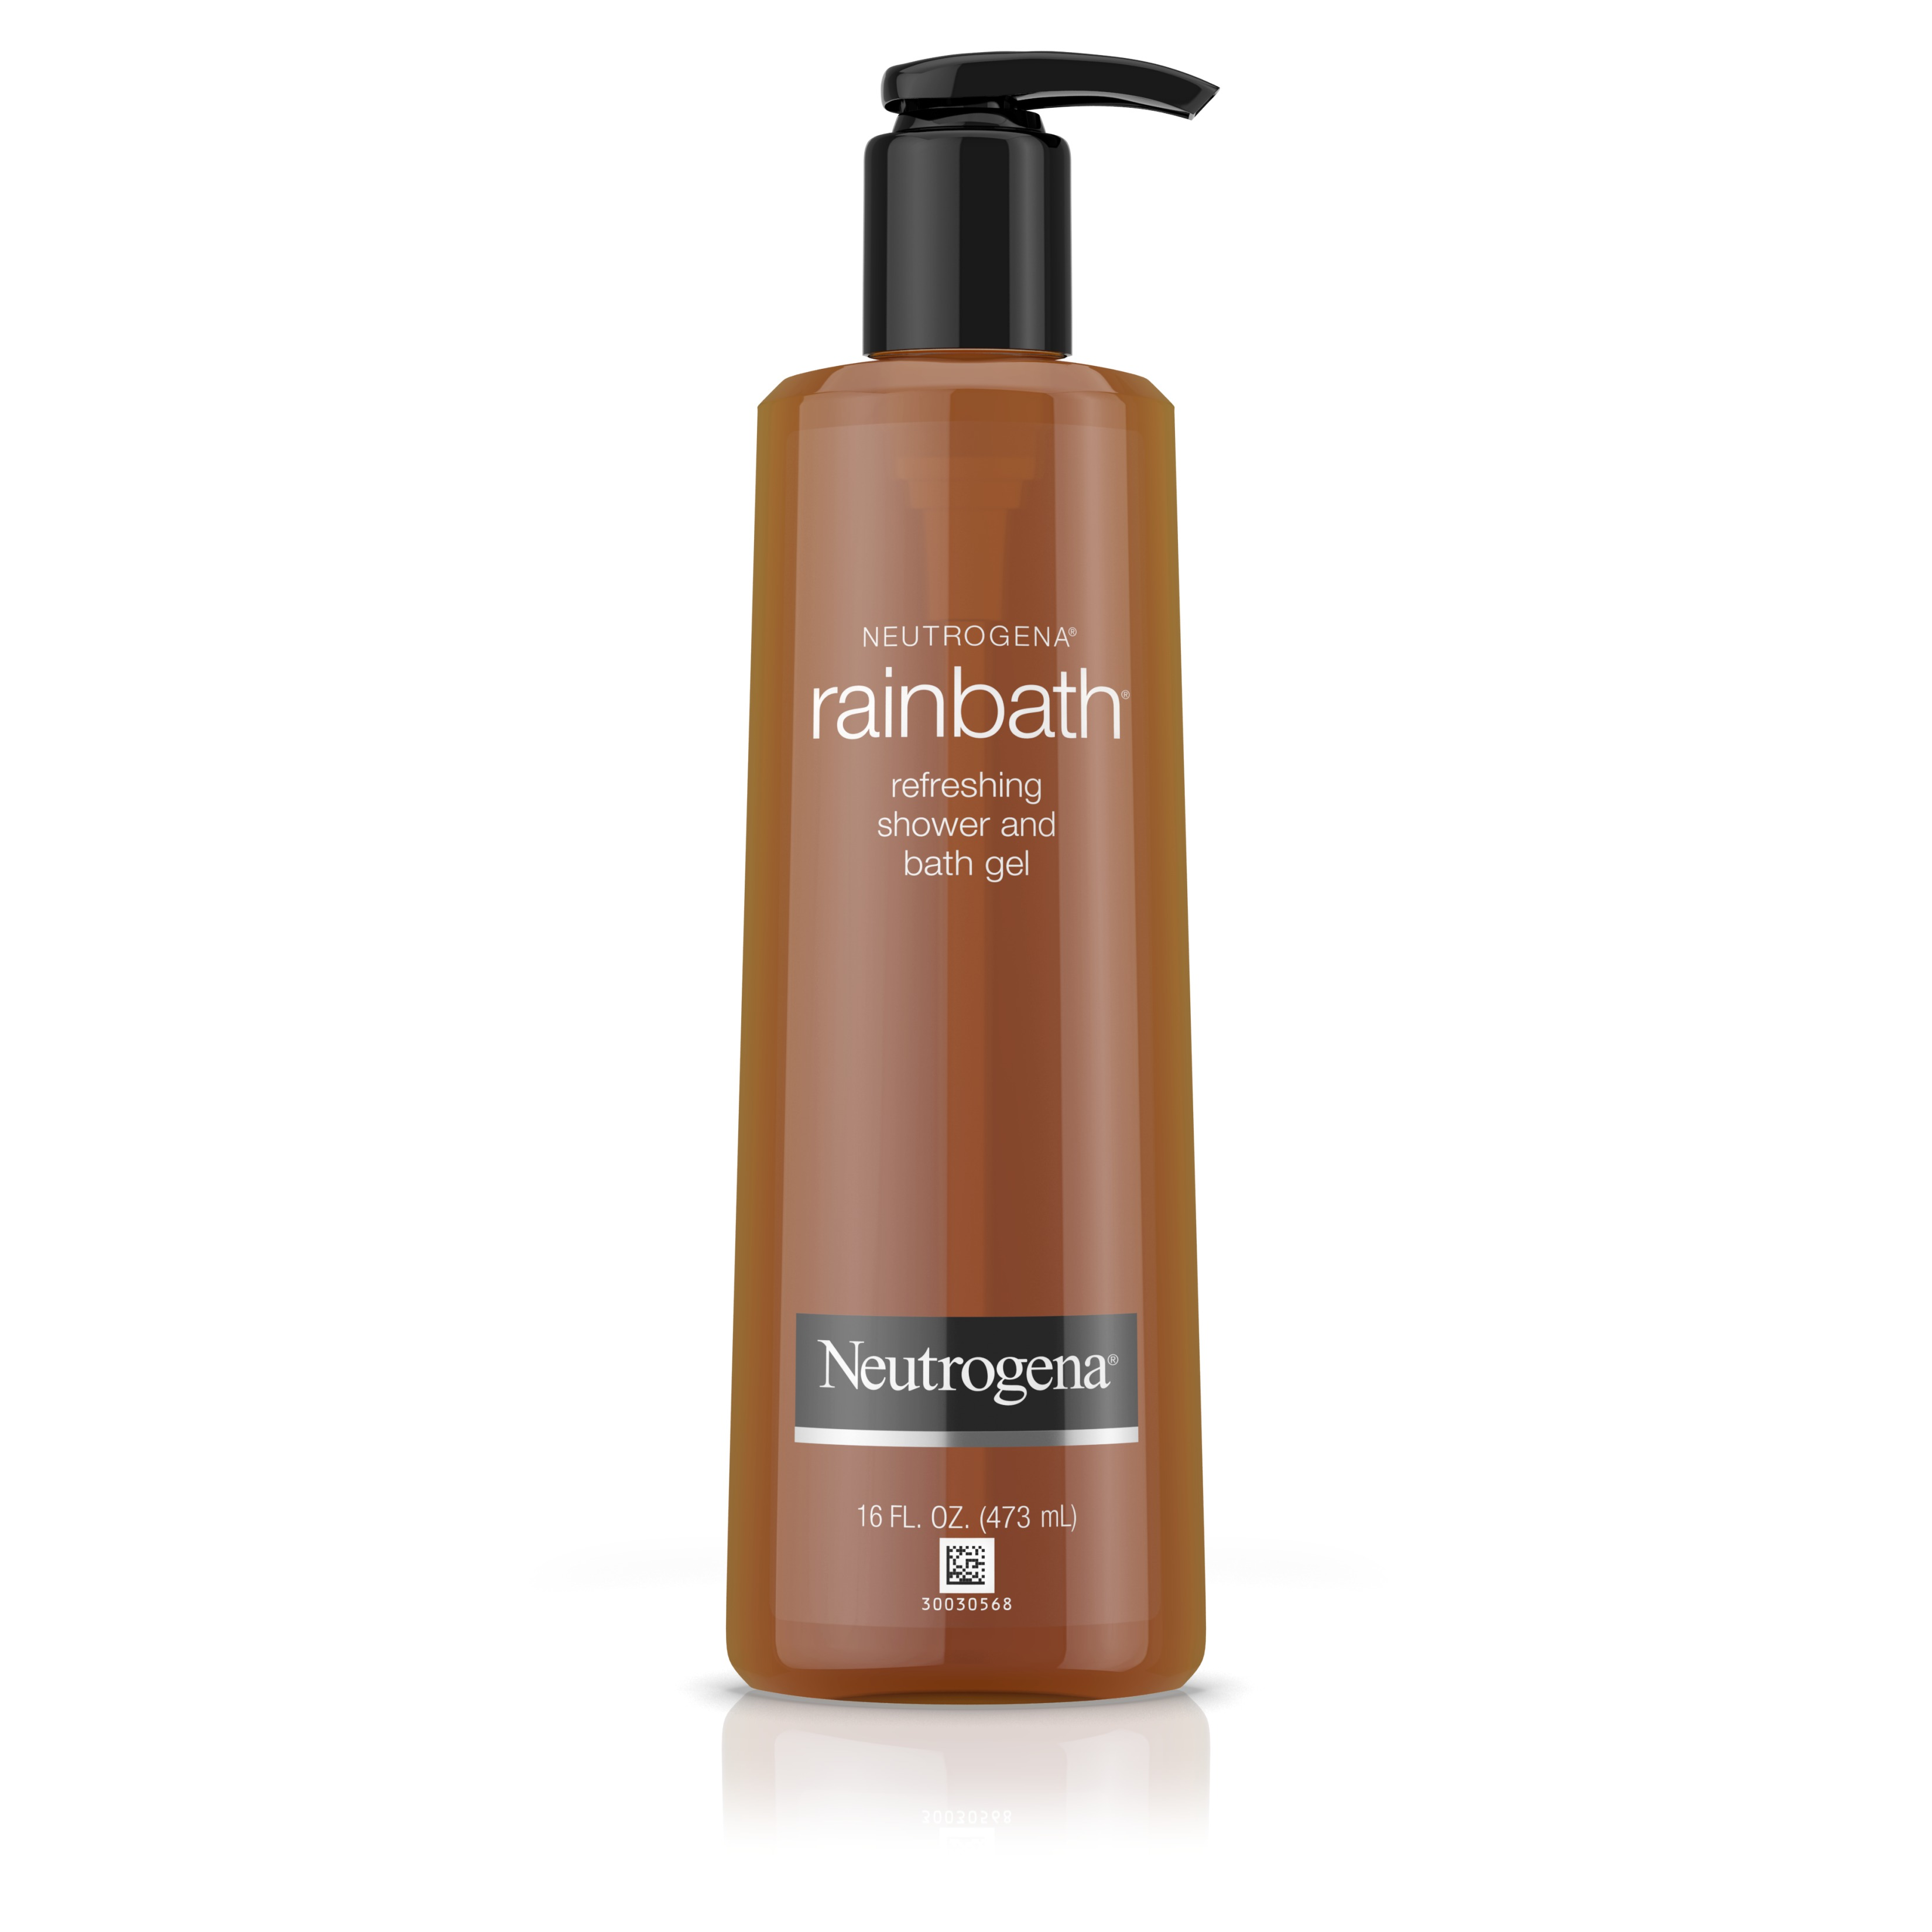 Neutrogena Rainbath Refreshing Shower And Bath Gel, Body Wash, Original, 16 Fl. Oz. - Walmart.com